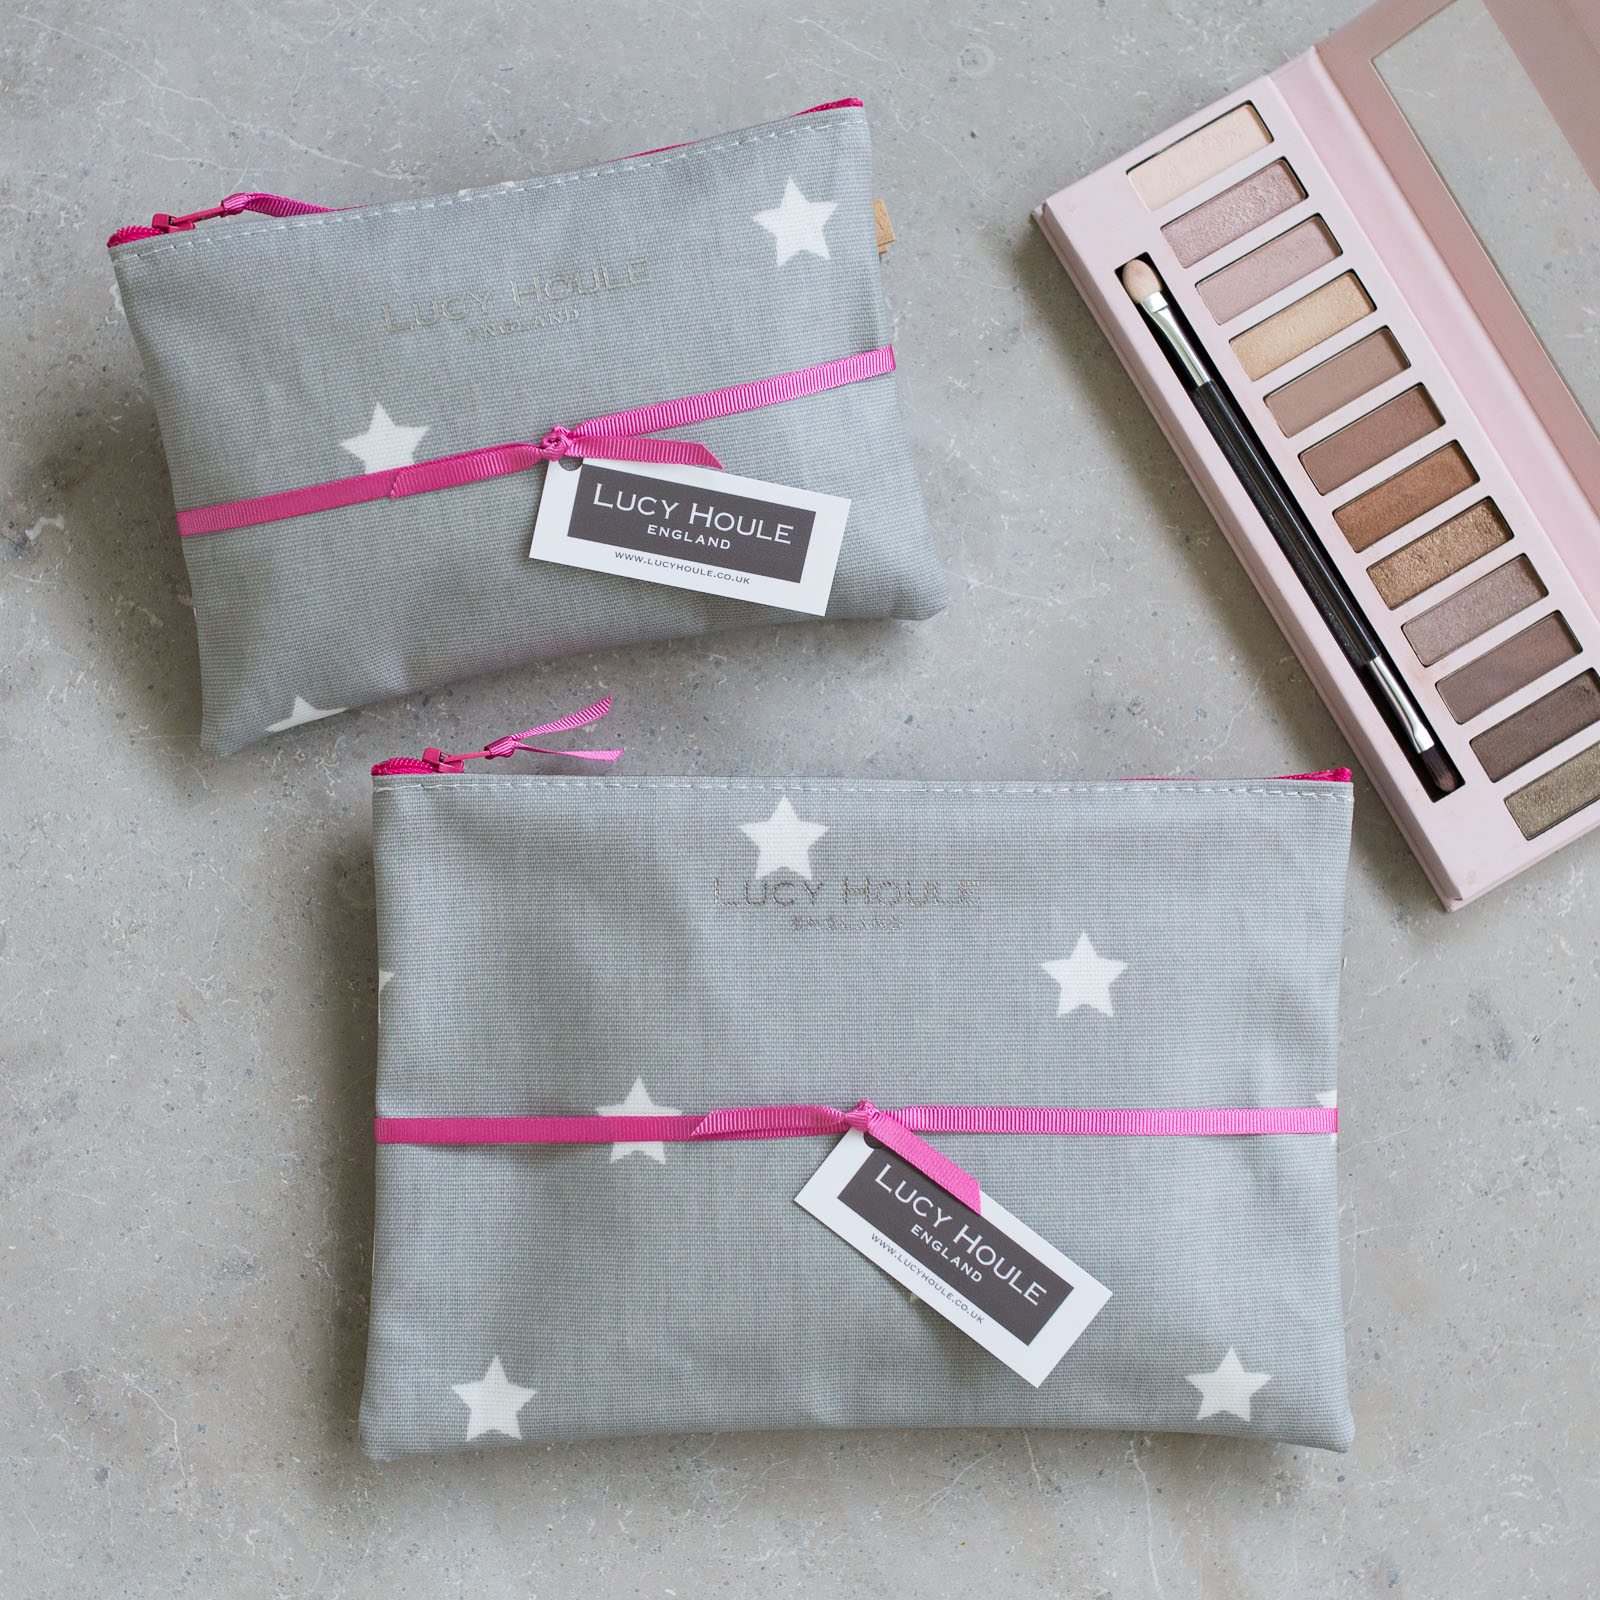 Grey & White Star Make-Up Bag with Pink Zip